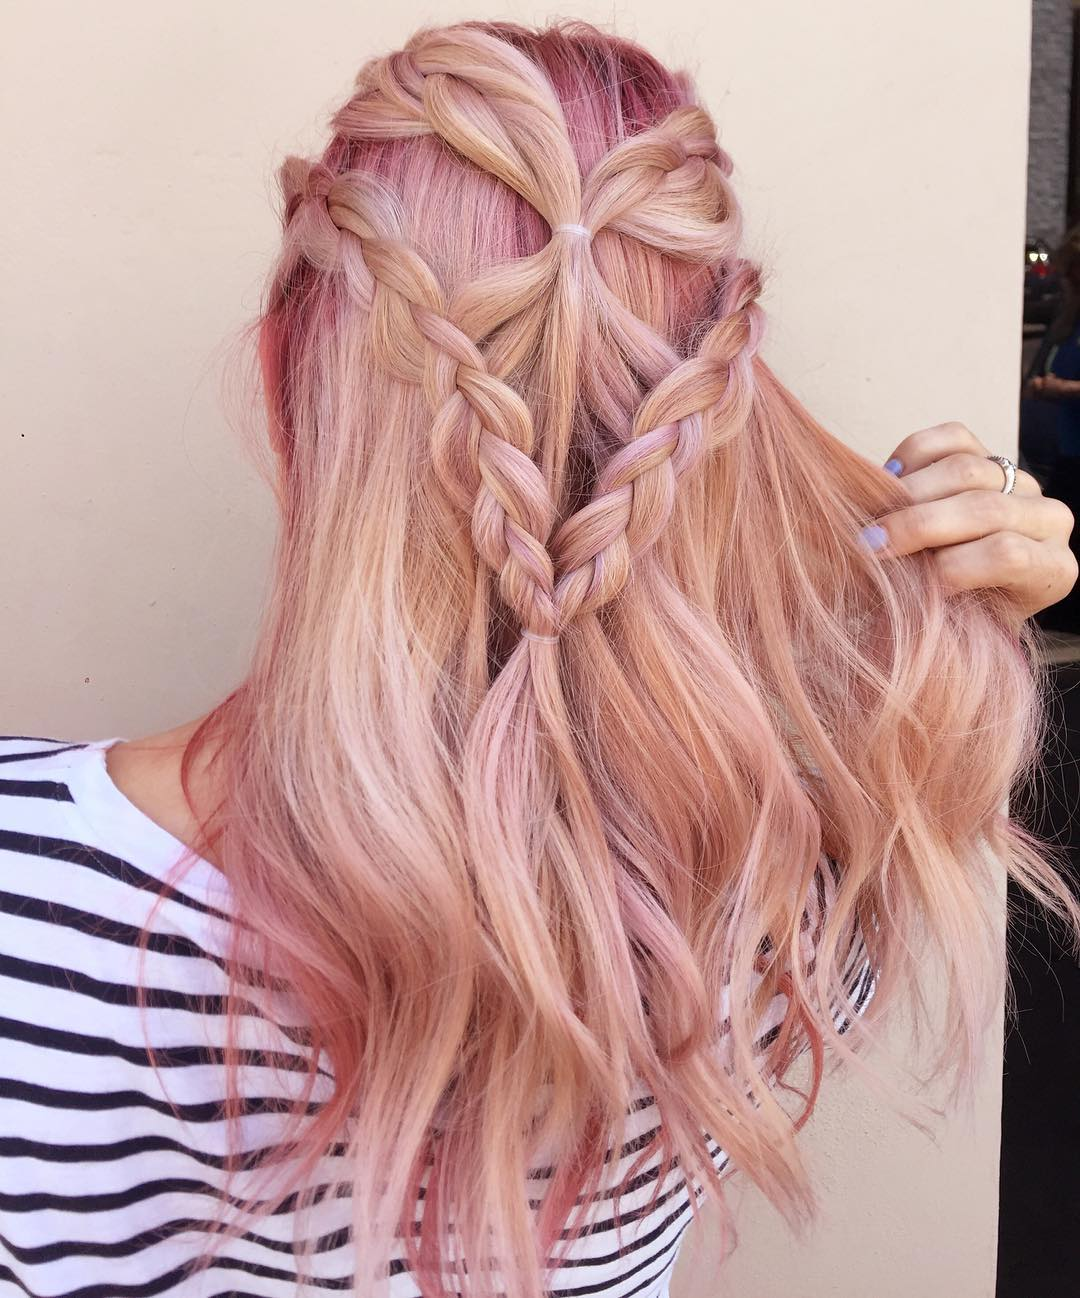 20 Long Hairstyles You Will Want to Rock Immediately!